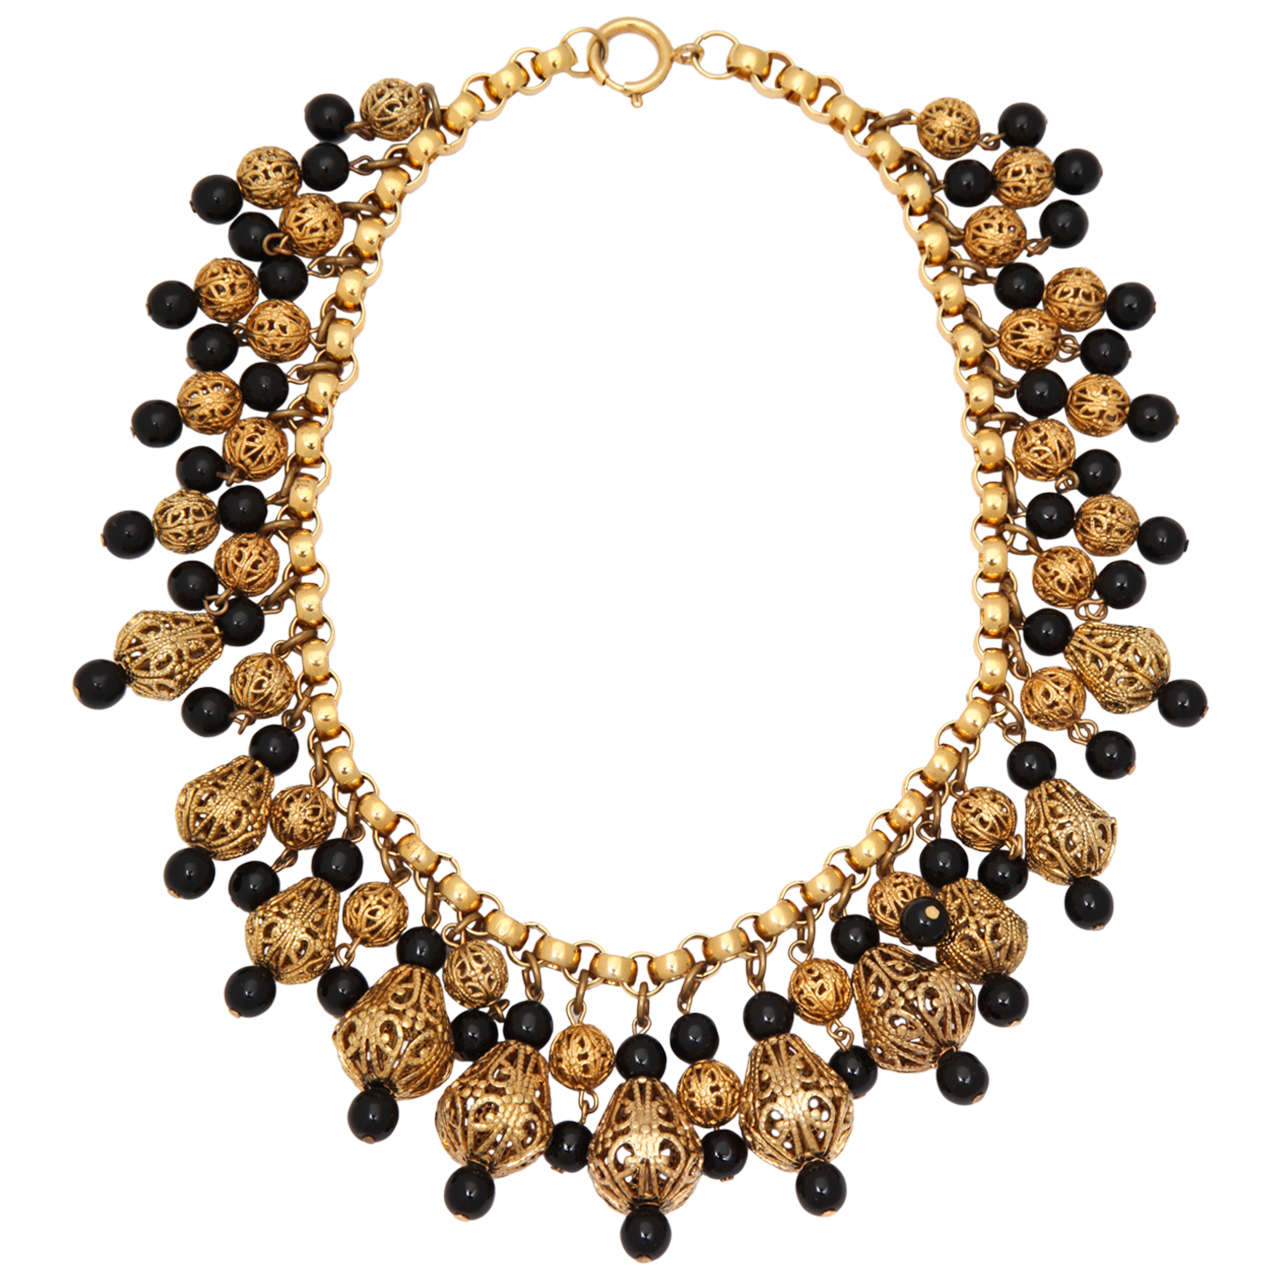 Black Bead and Goldtone Filigree Necklace by Regency 1